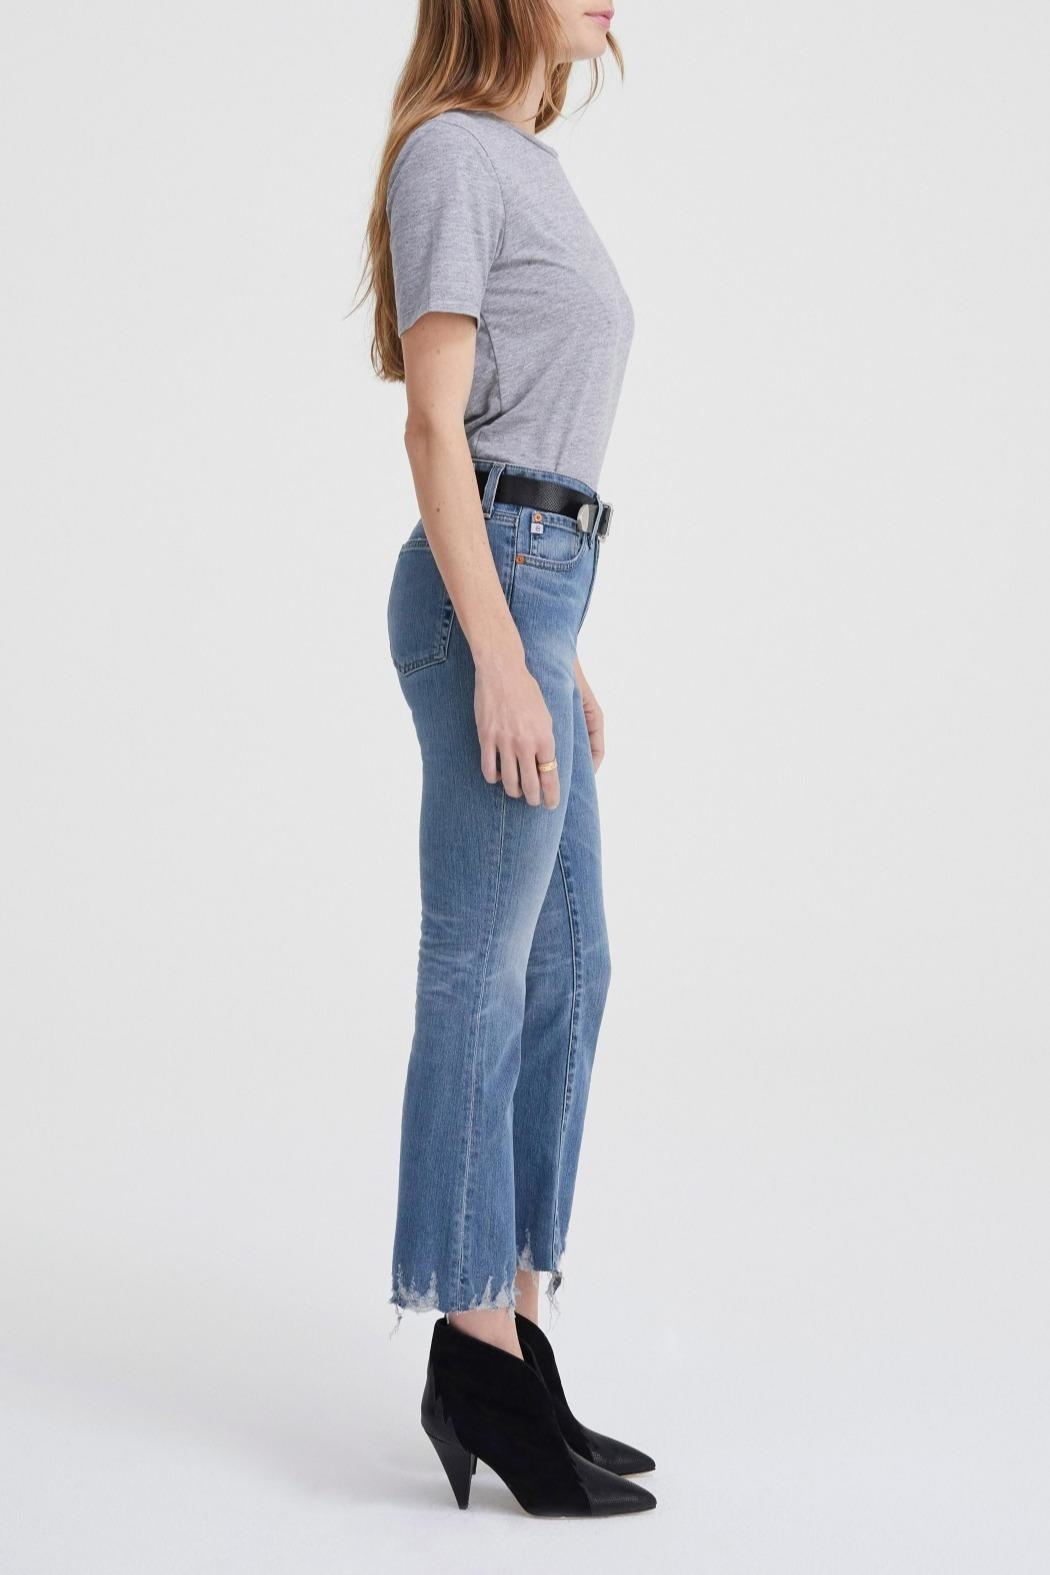 AG Jeans The Jodi Crop - Side Cropped Image